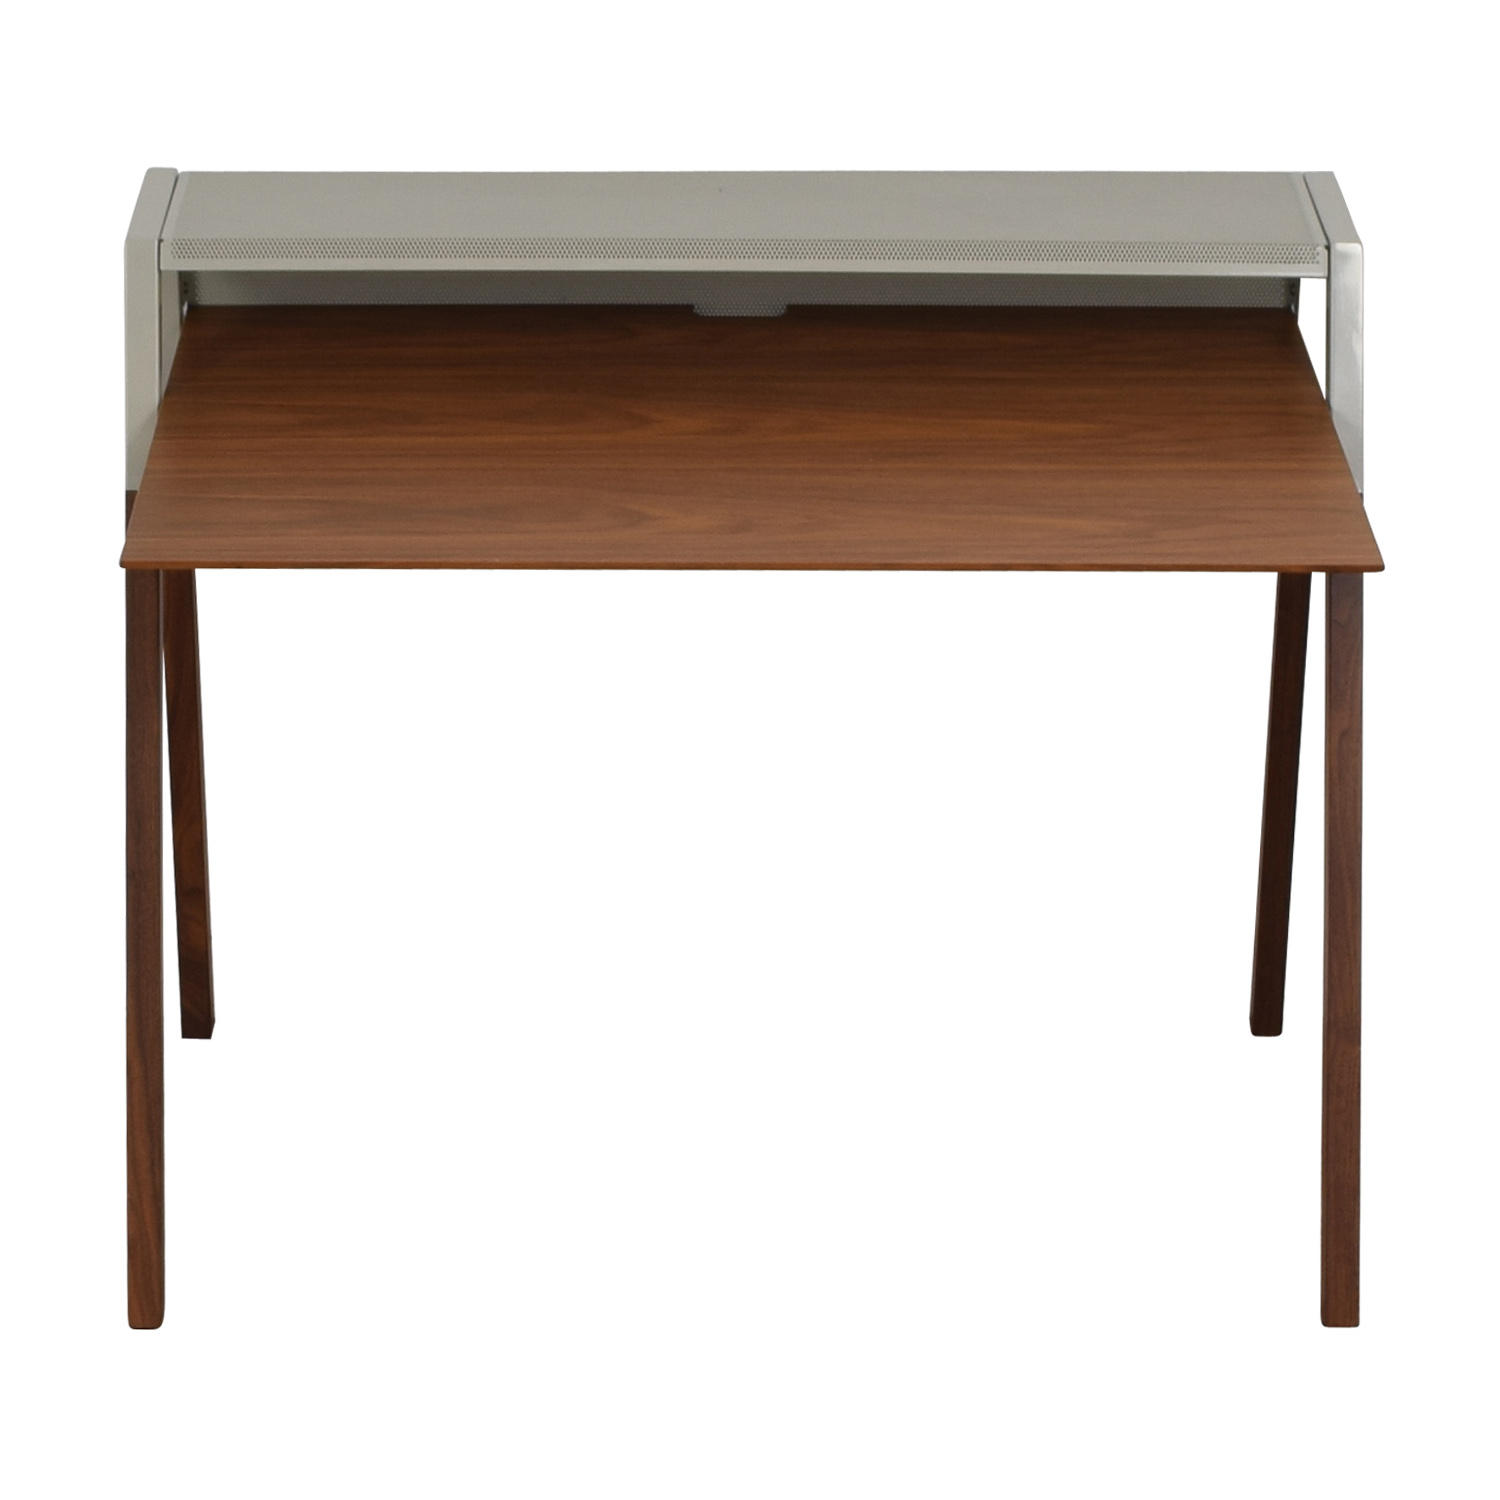 Blu Dot Cant Walnut and Grey Desk / Home Office Desks